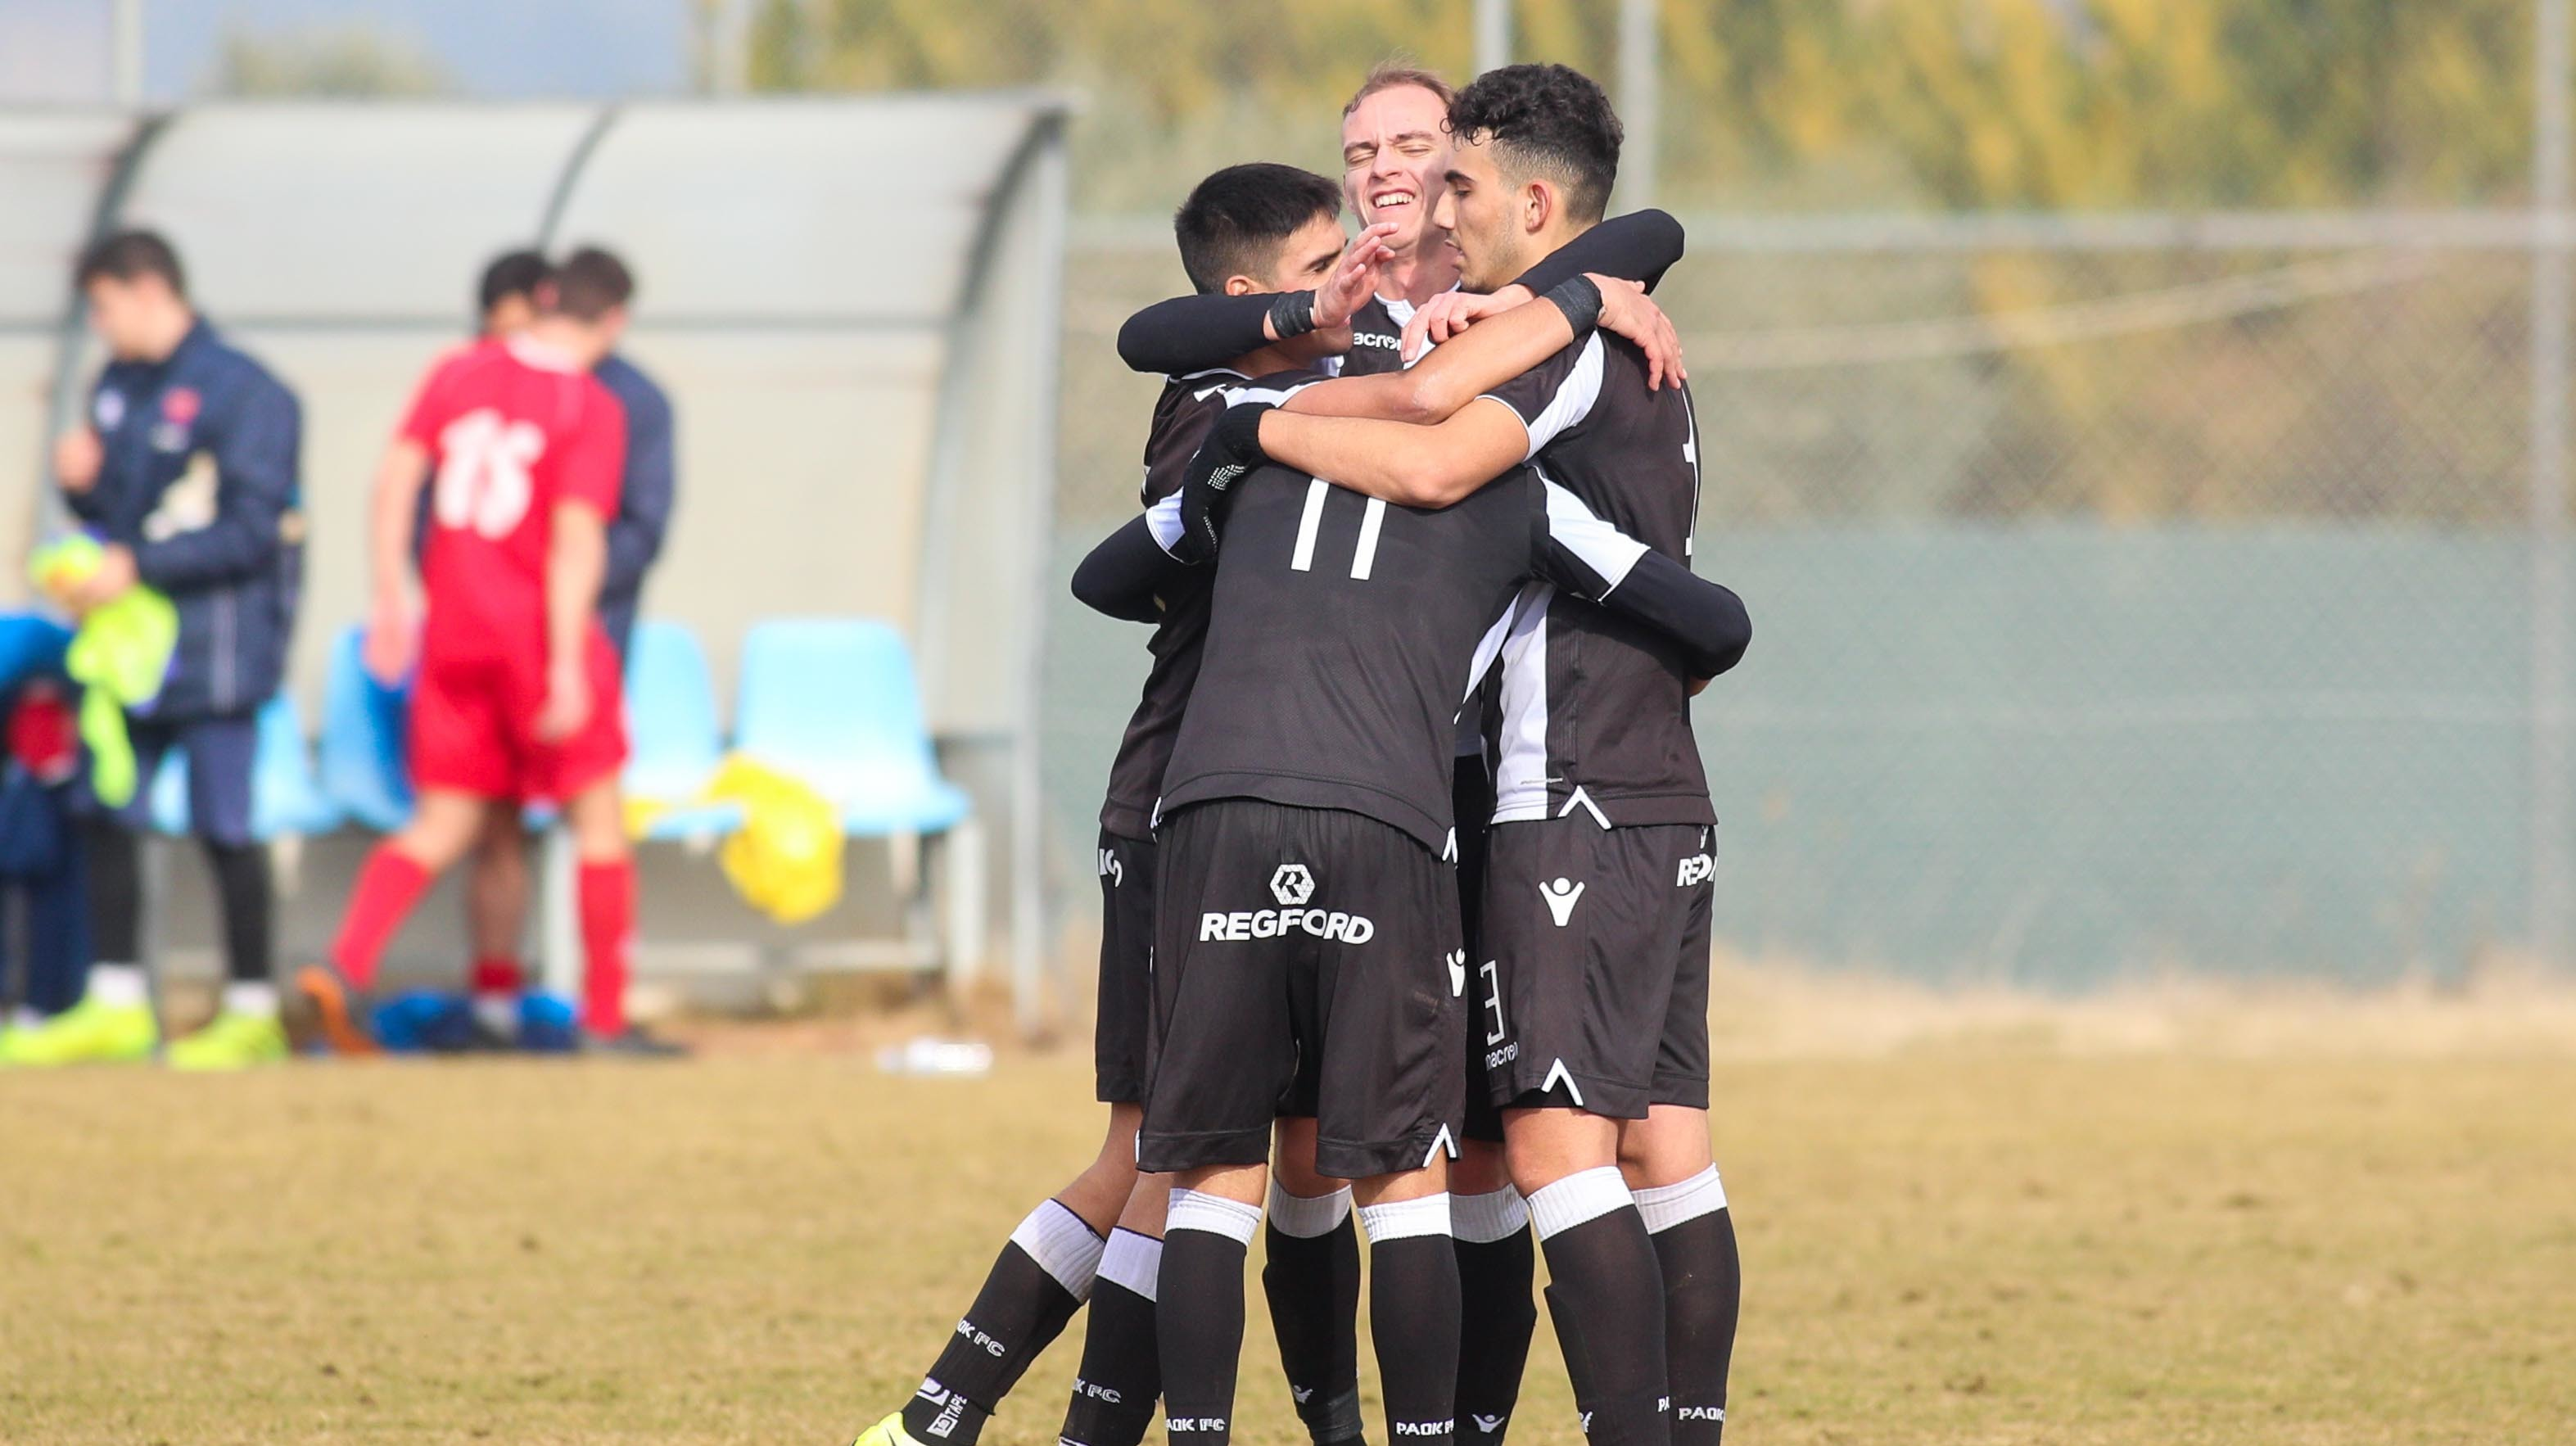 PAOK U19 – Levadiakos U19: Highlights